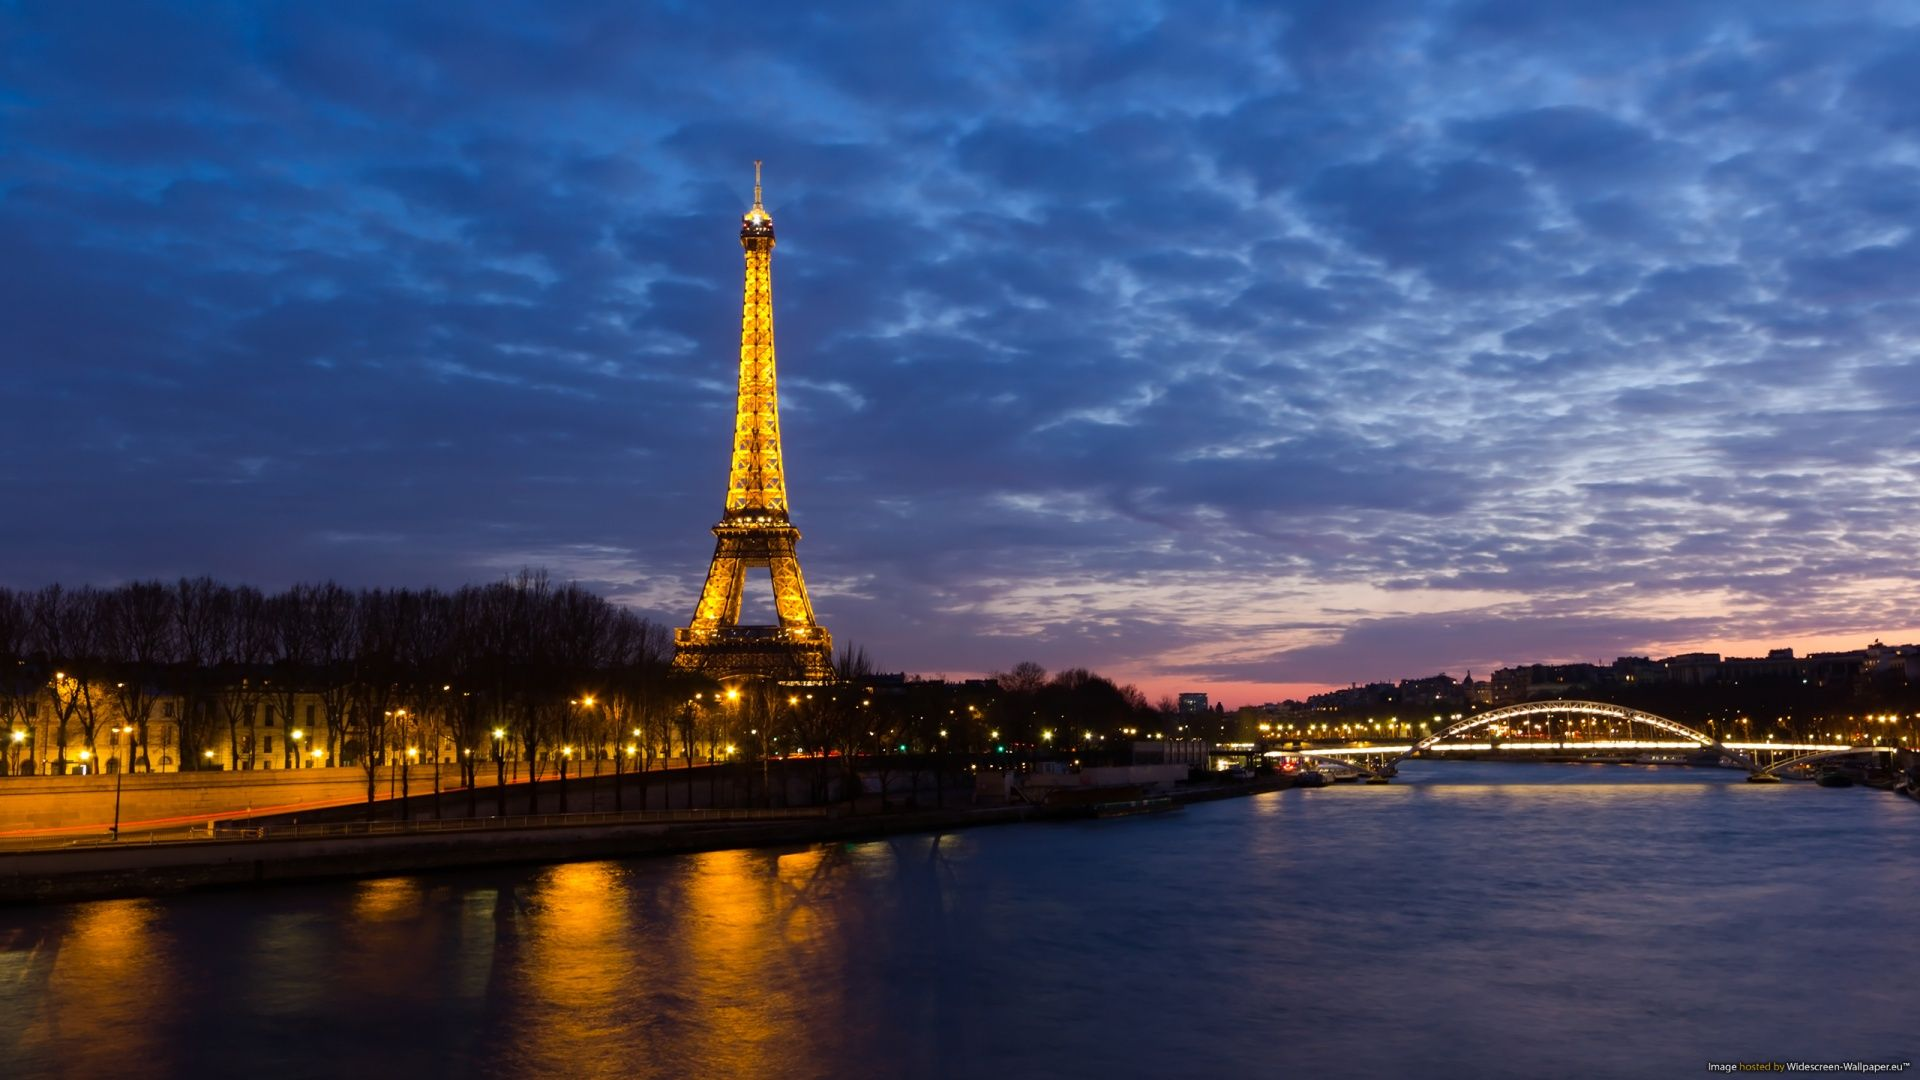 Paris Background Desktop Free KB By Wilmer Bishop 1920x1080 Wallpapers For 56